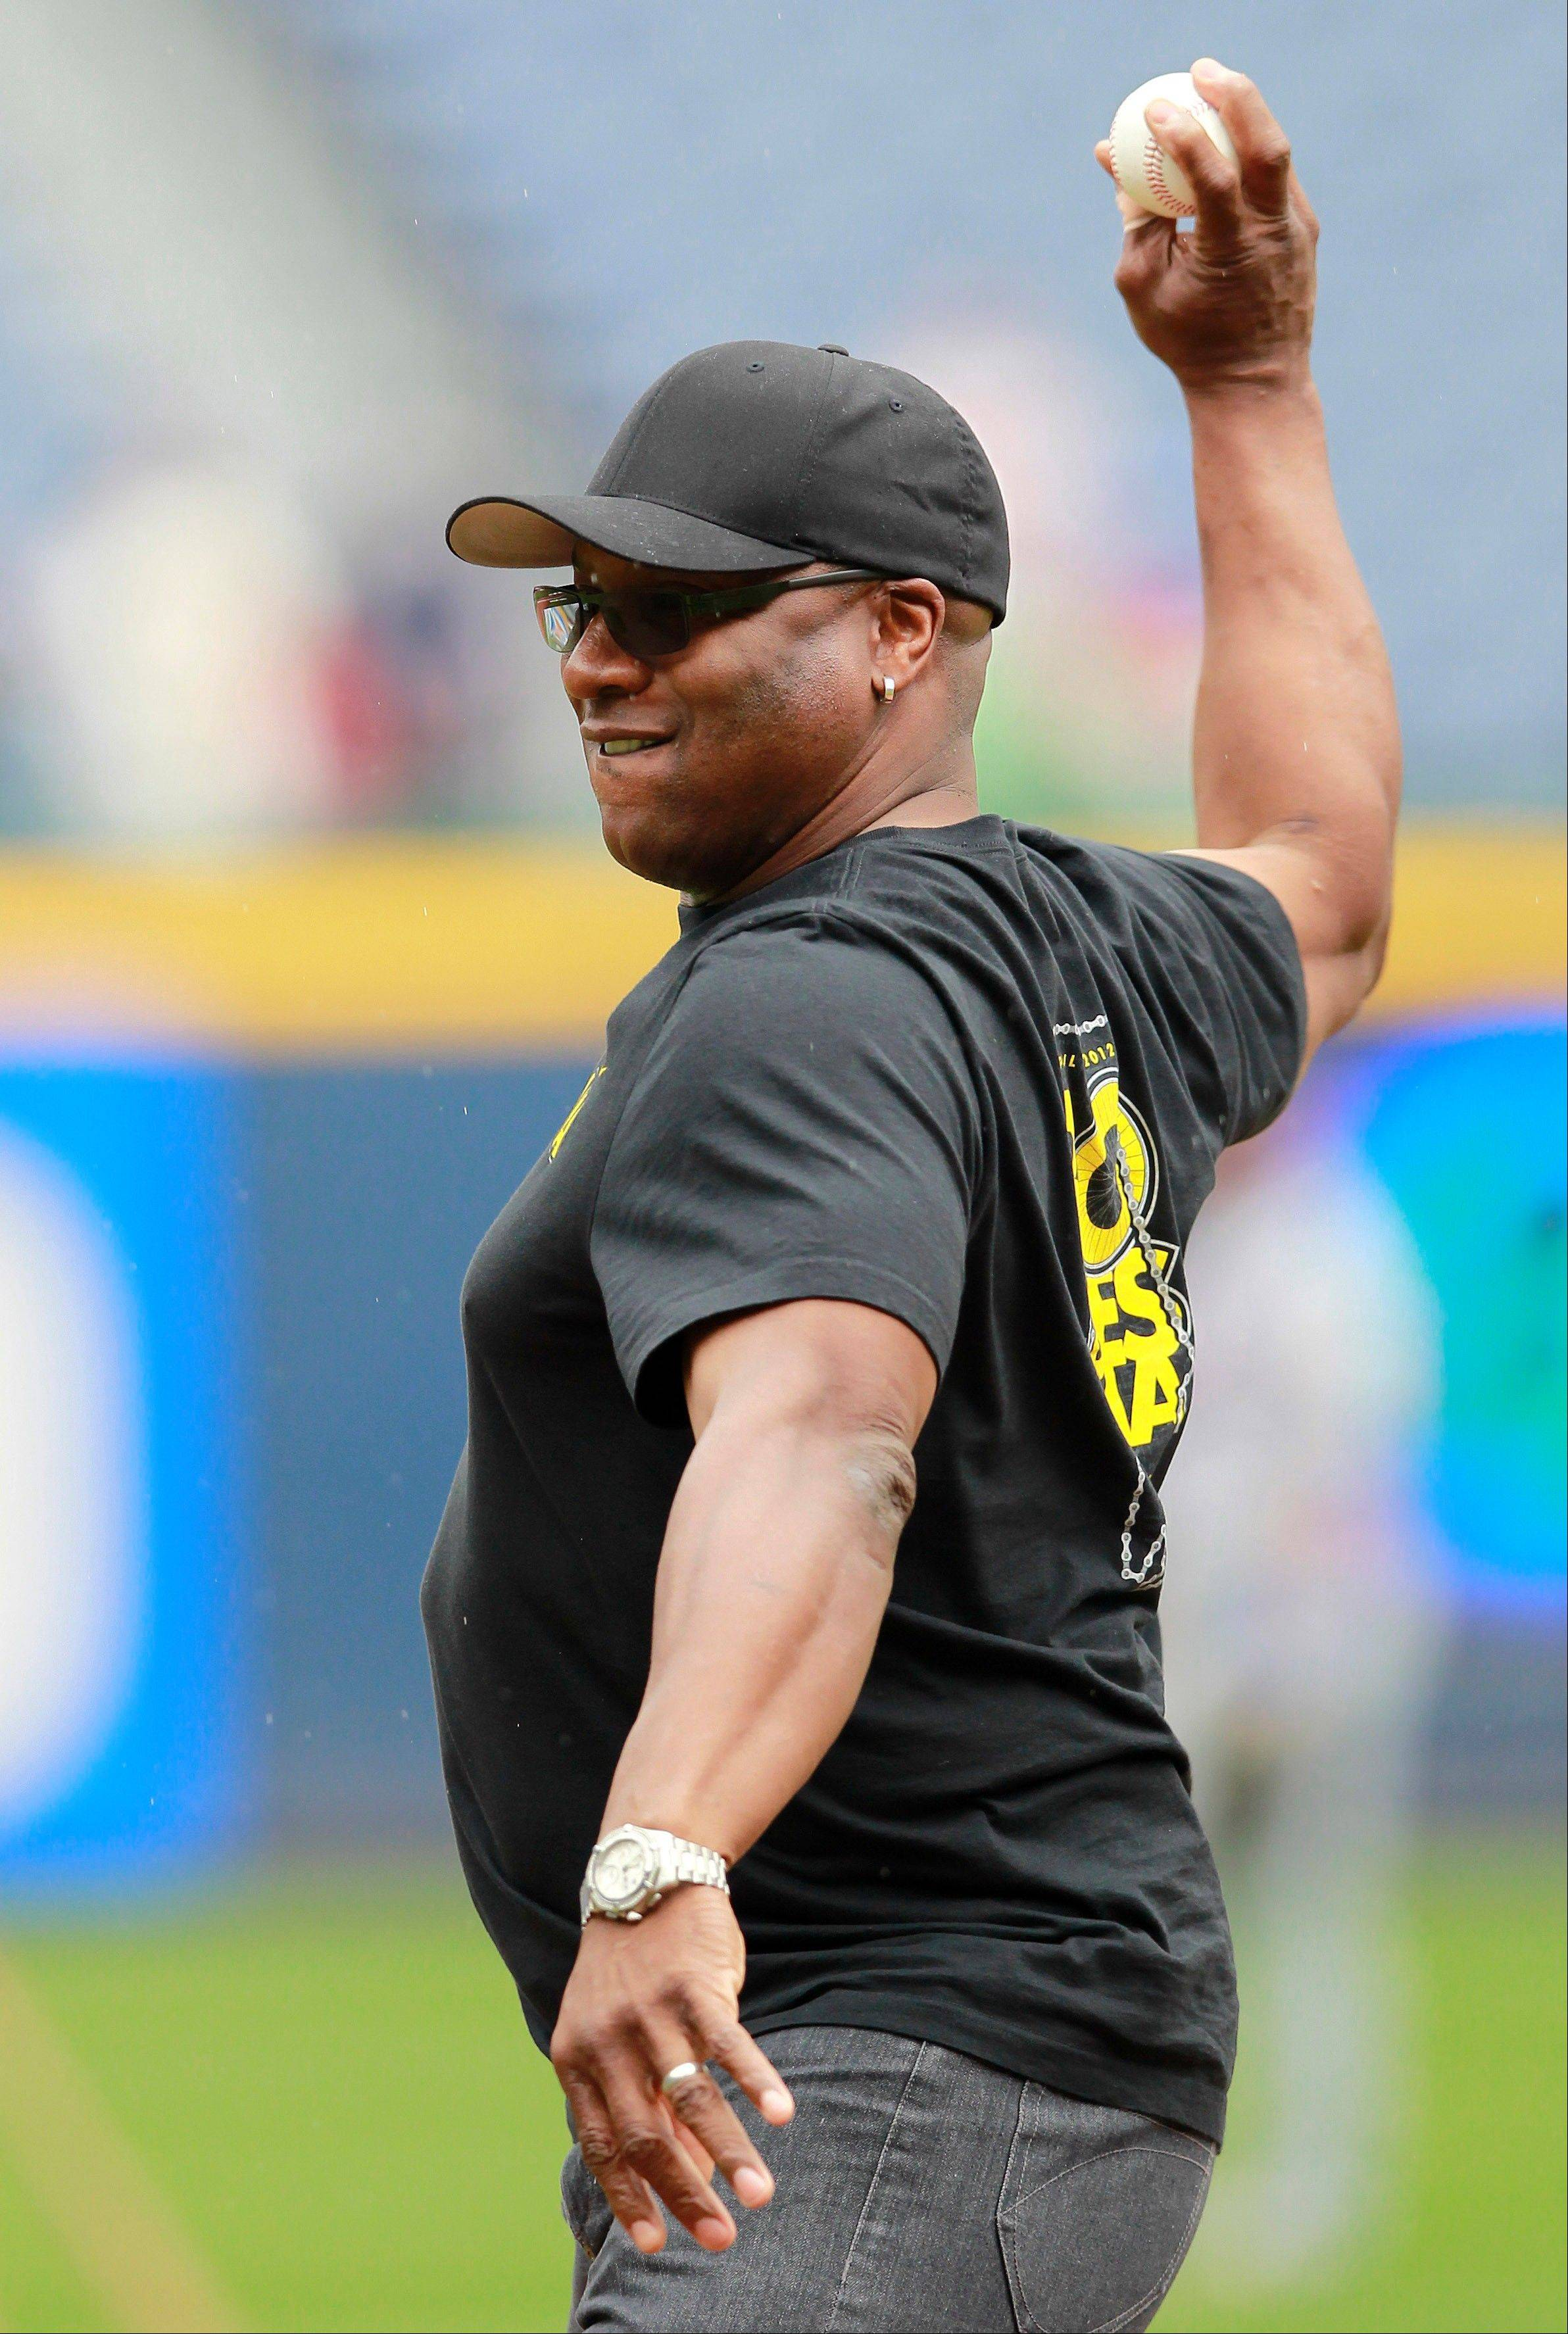 Former baseball and football star Bo Jackson will throw out the ceremonial first pitch at the Opening Day game between the Chicago White Sox and the Kansas City Royals on Monday at U.S. Cellular Field. Jackson played for both clubs in his MLB career.